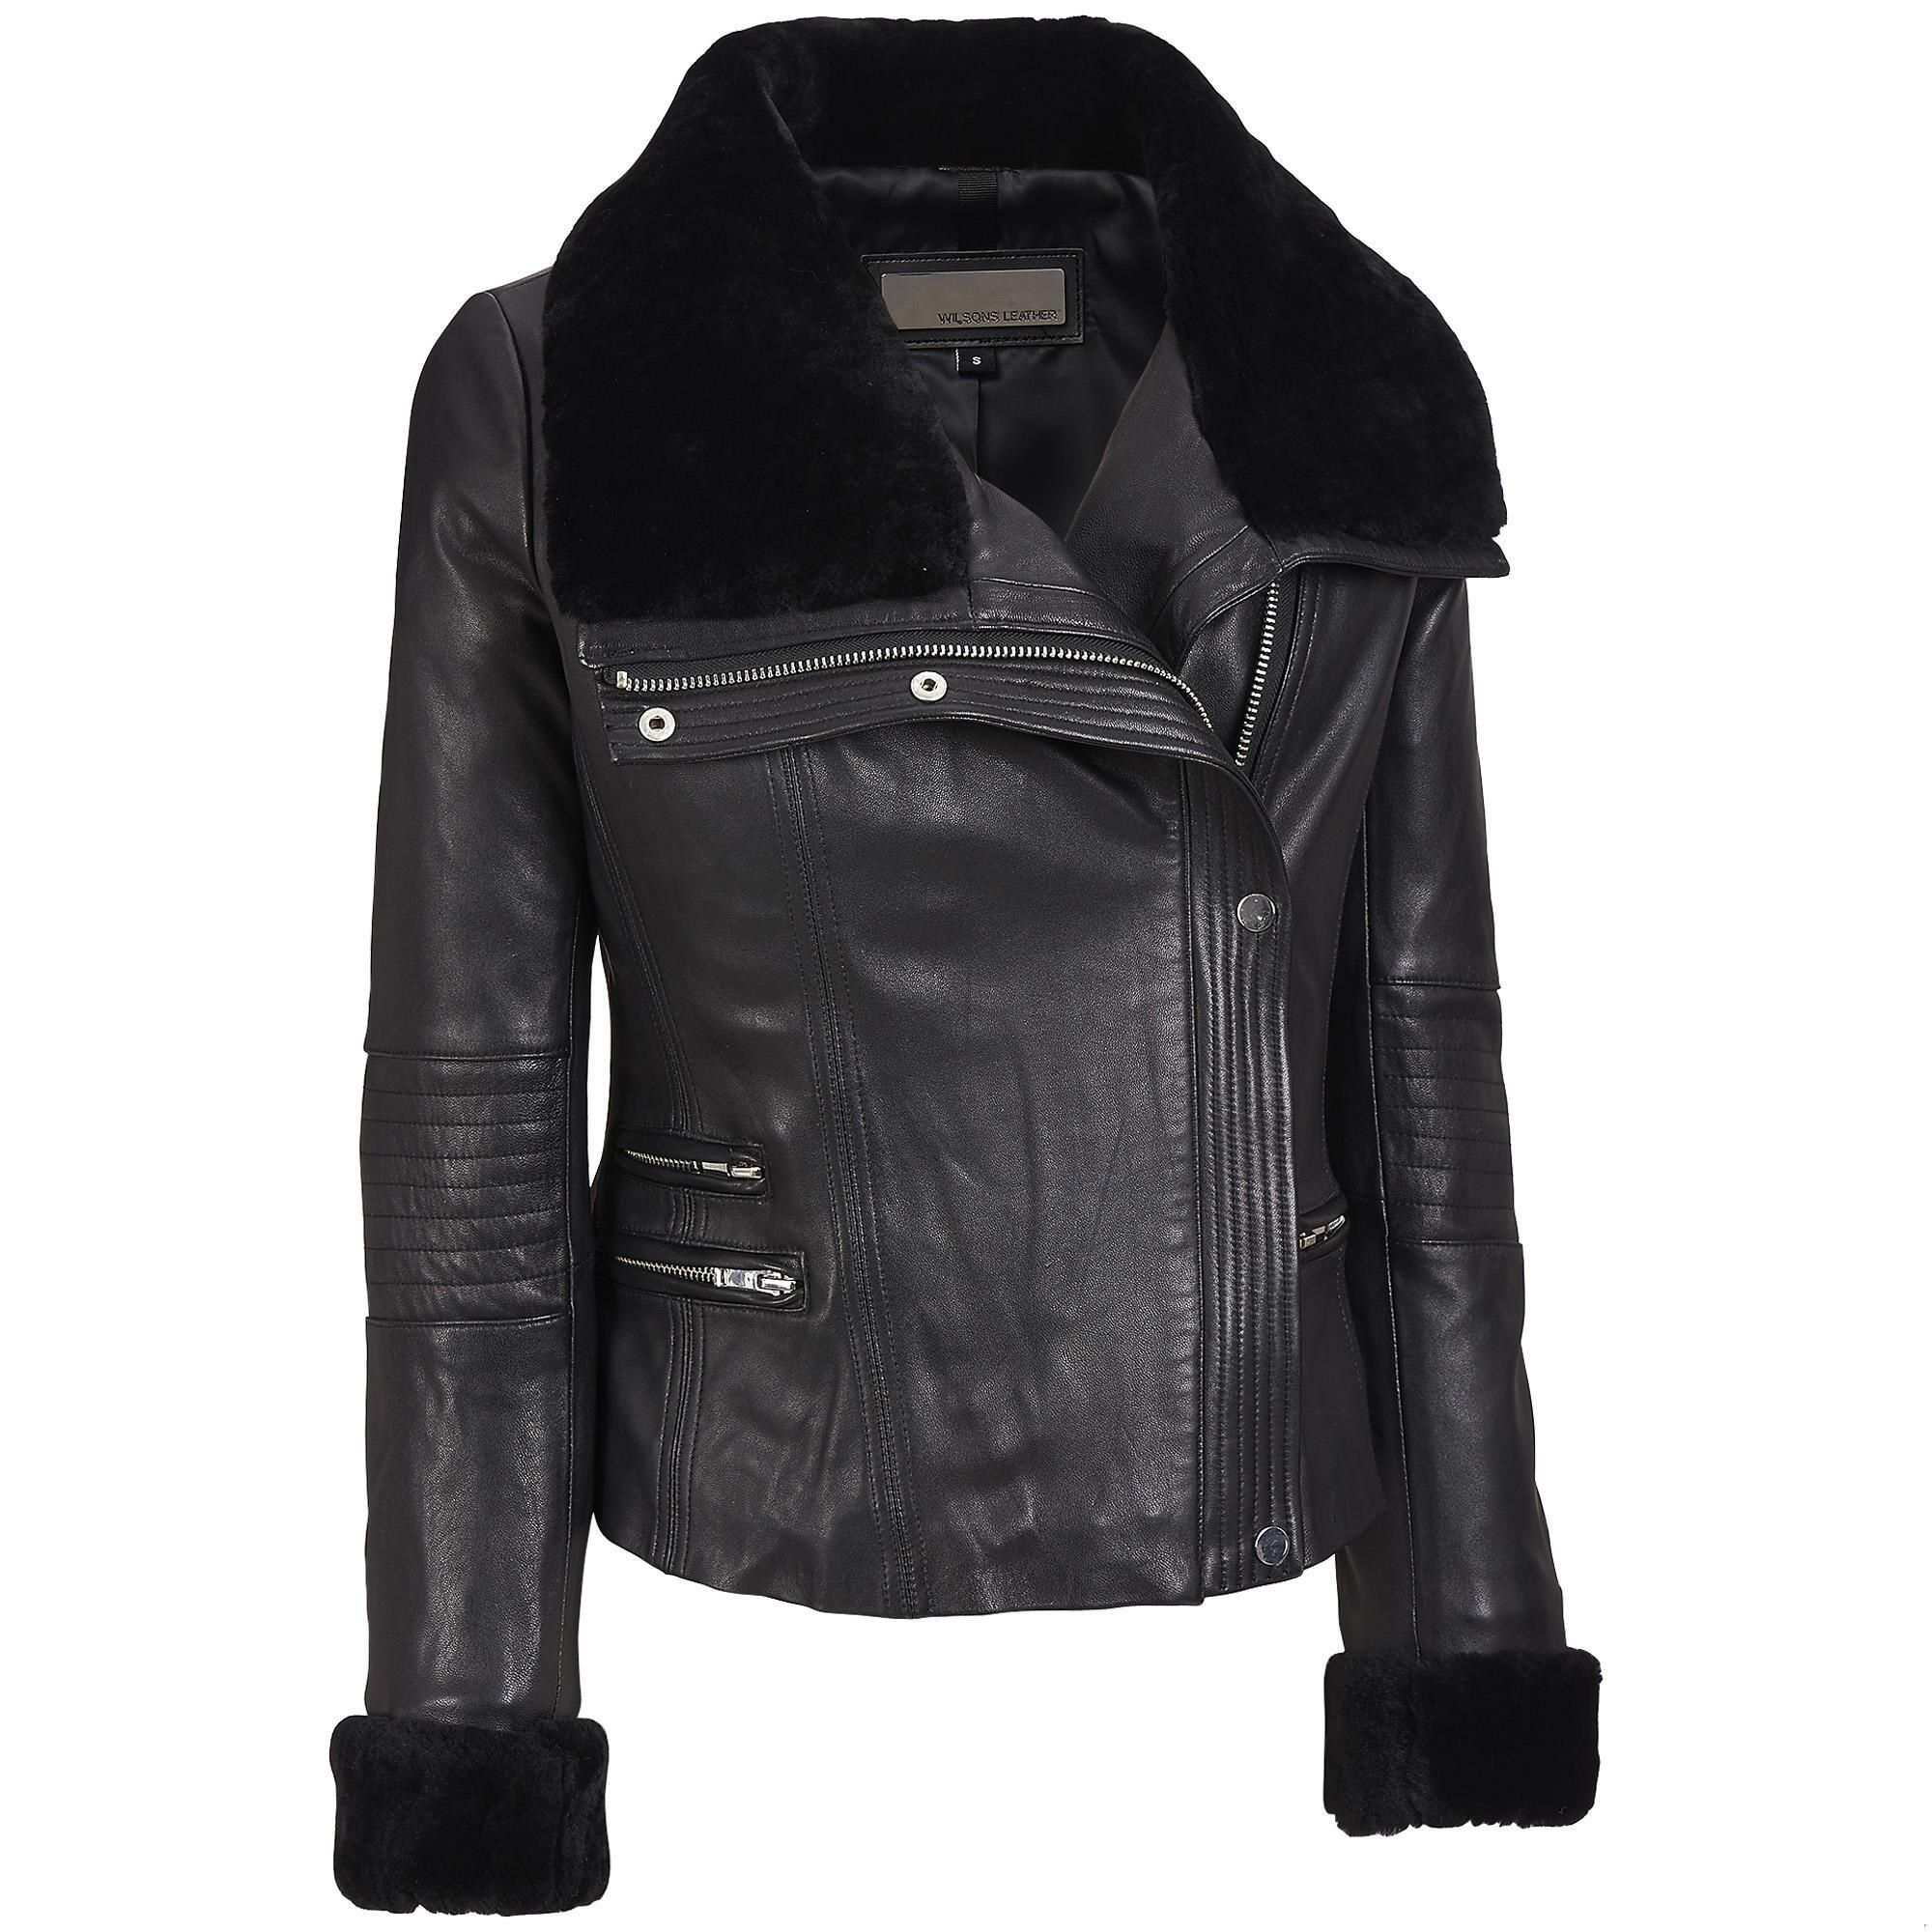 Wilsons Leather Asymmetric Leather Cycle Jacket w